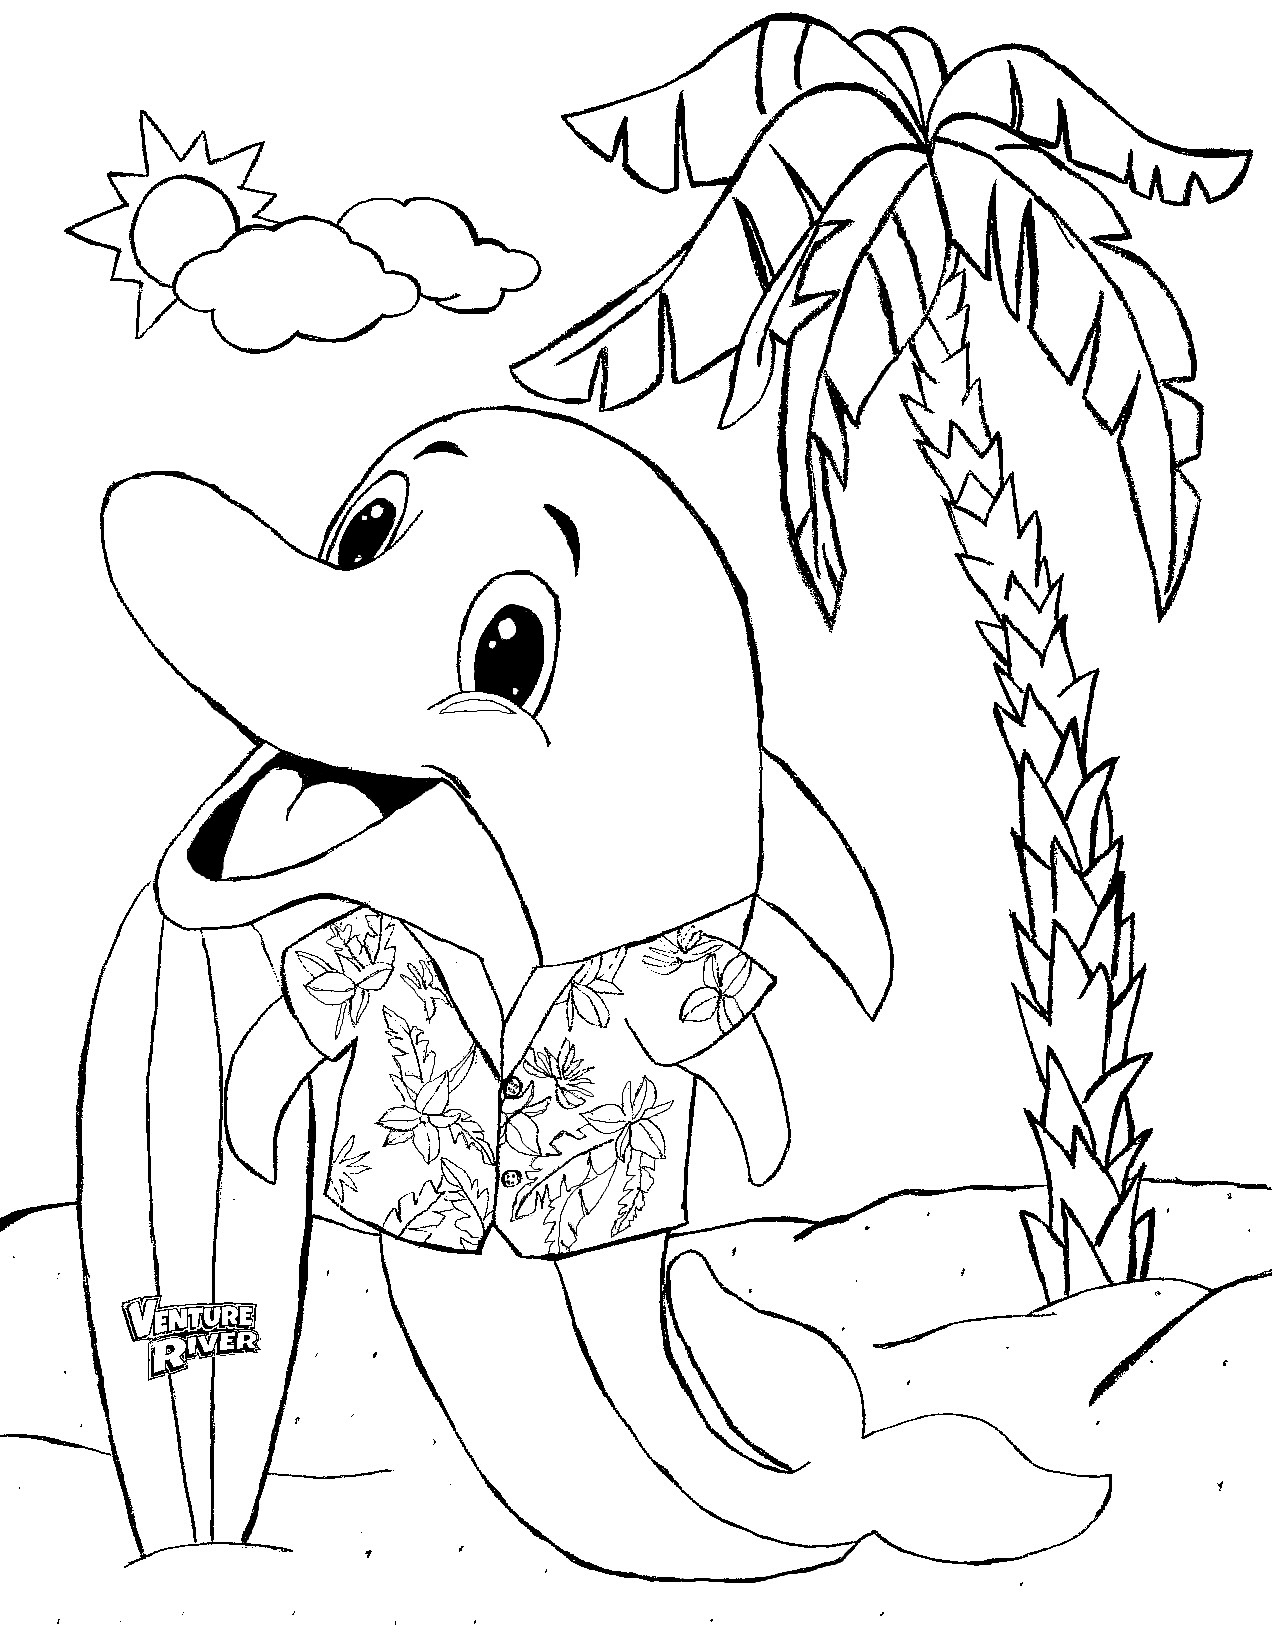 water park coloring pages - photo#22